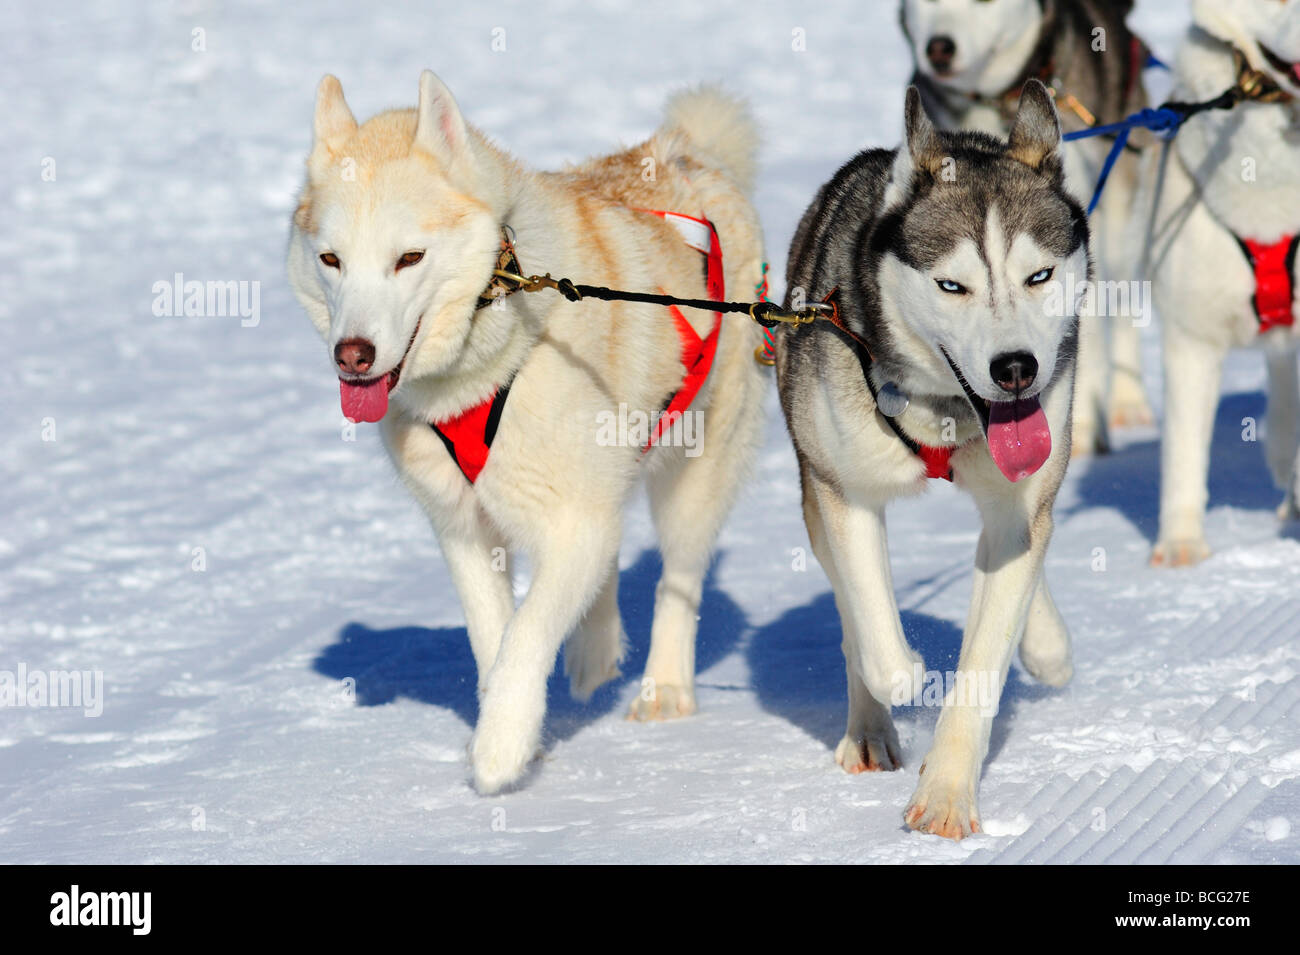 Details of a Malamute sled dog team in full action heading towards the camera - Stock Image